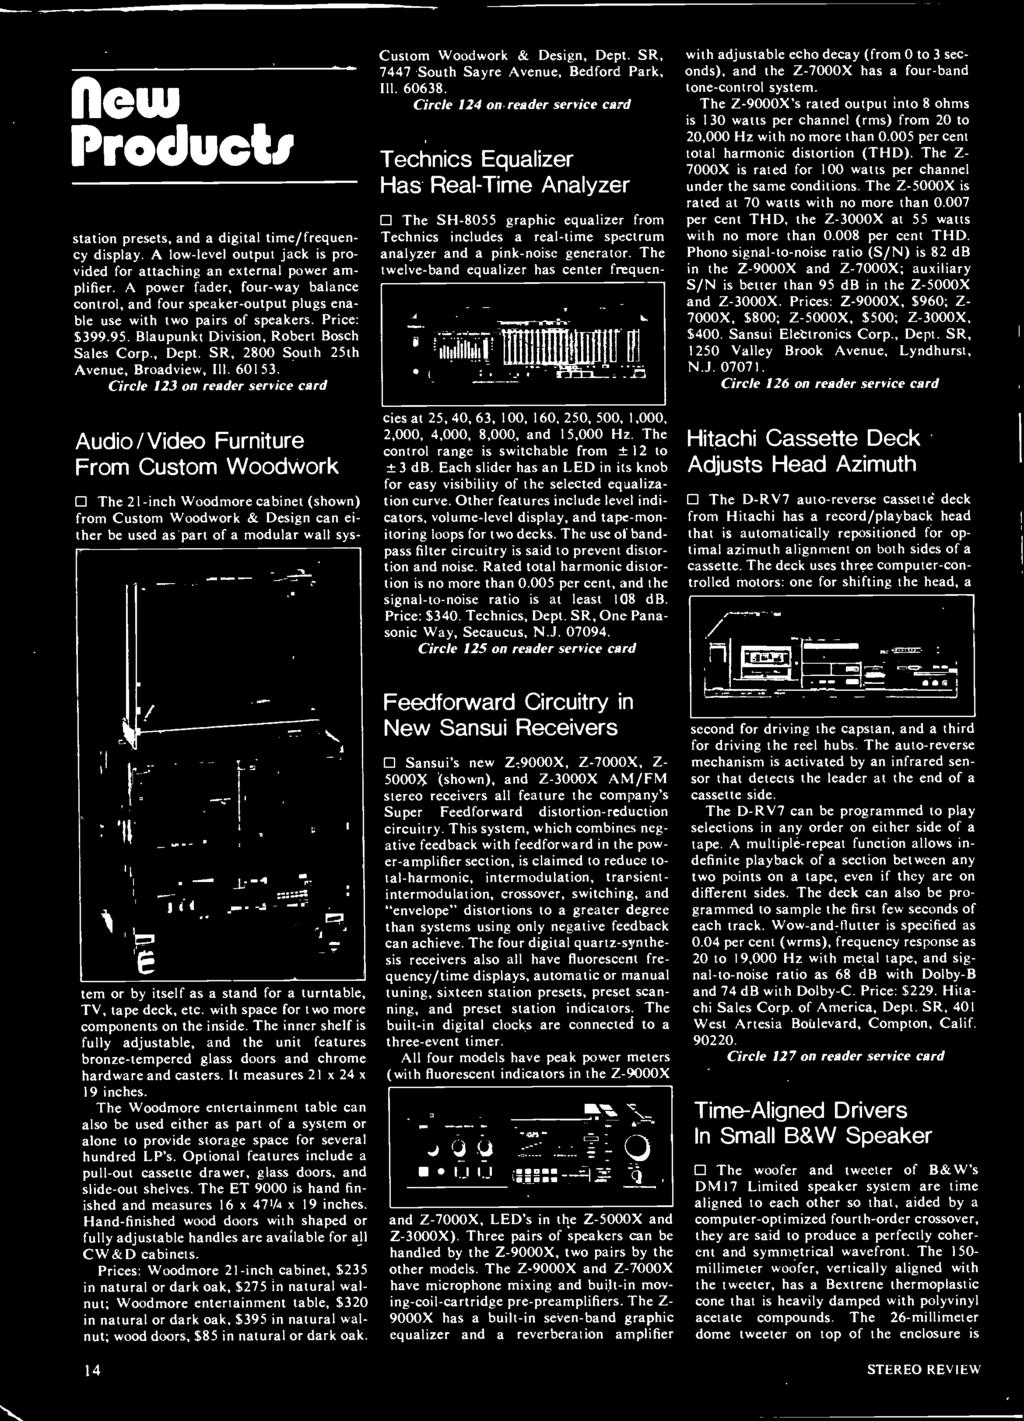 E J How To Deal With Your Audio Dealer Use An Equalizer For Better 30w Stereo Power Amplifier Based Tda 1521 Circle 124 On Reader Service Card Technics Has Real Time Analyzer 0 The Sh